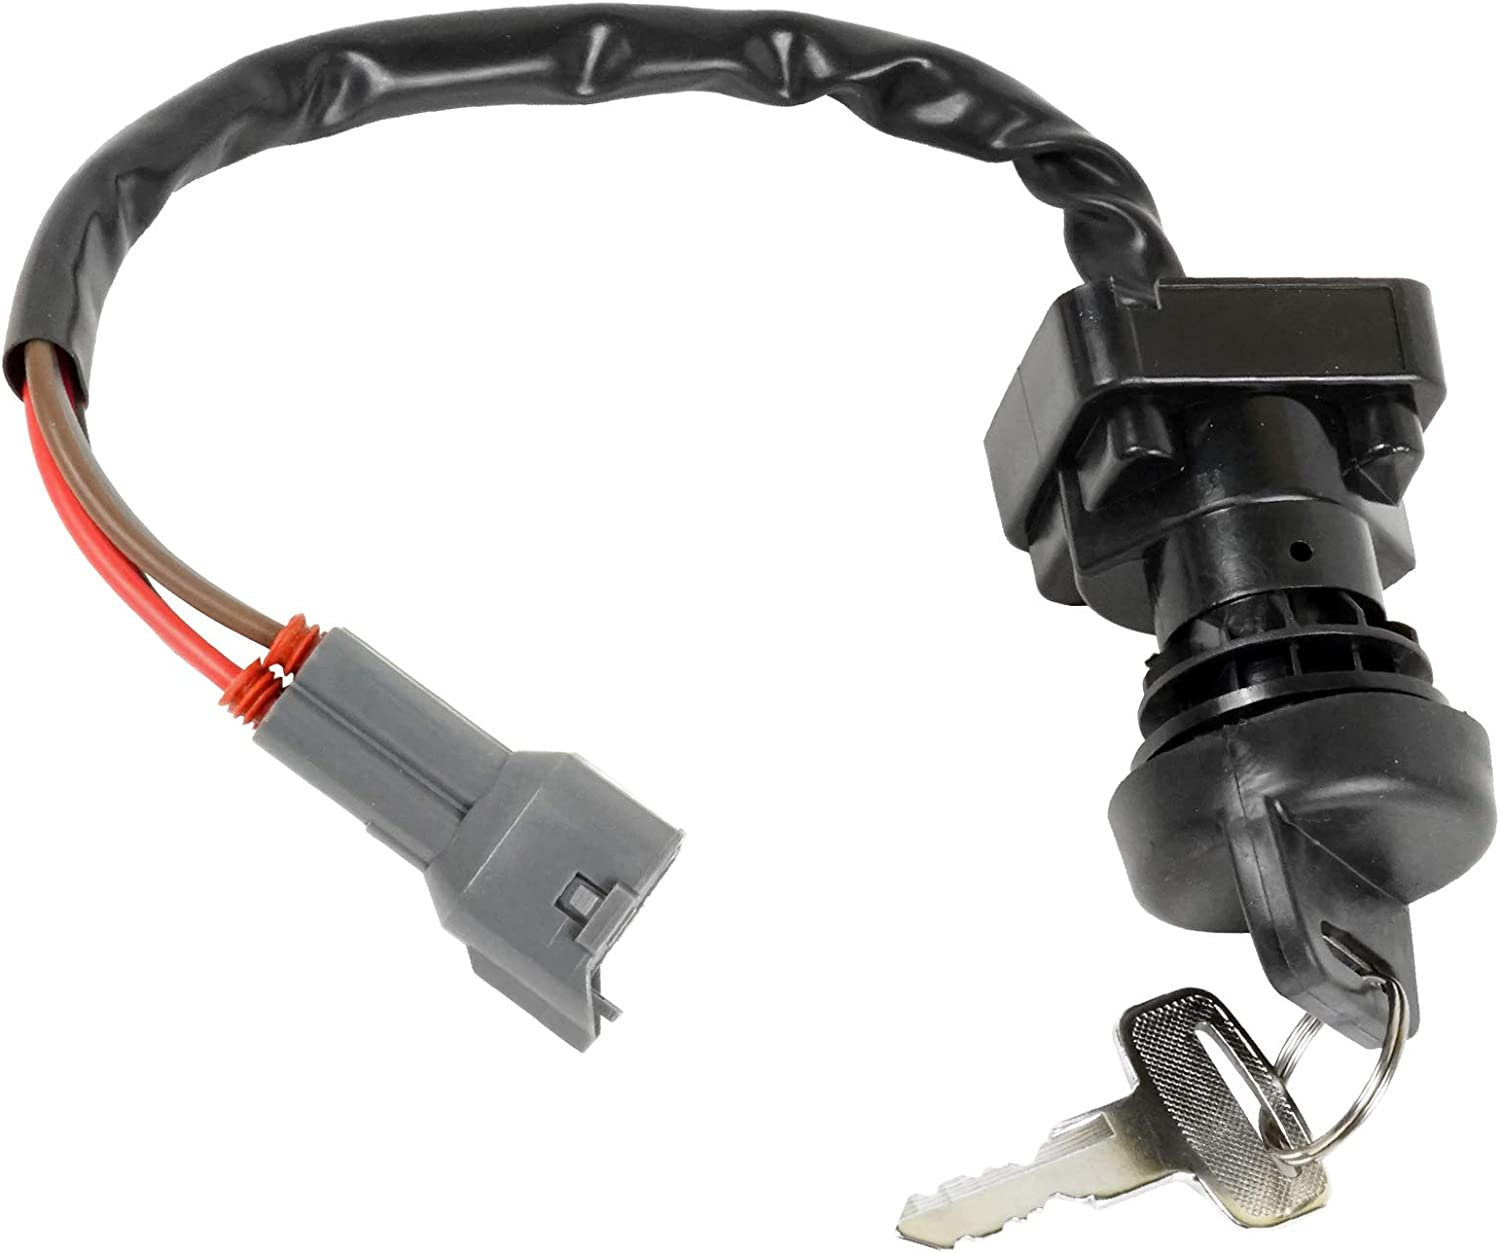 Caltric Ignition Switch Compatible With Arctic Cat 650 V2 V-2 V-TWIN 4X4 2004 2005 2006 0430-036